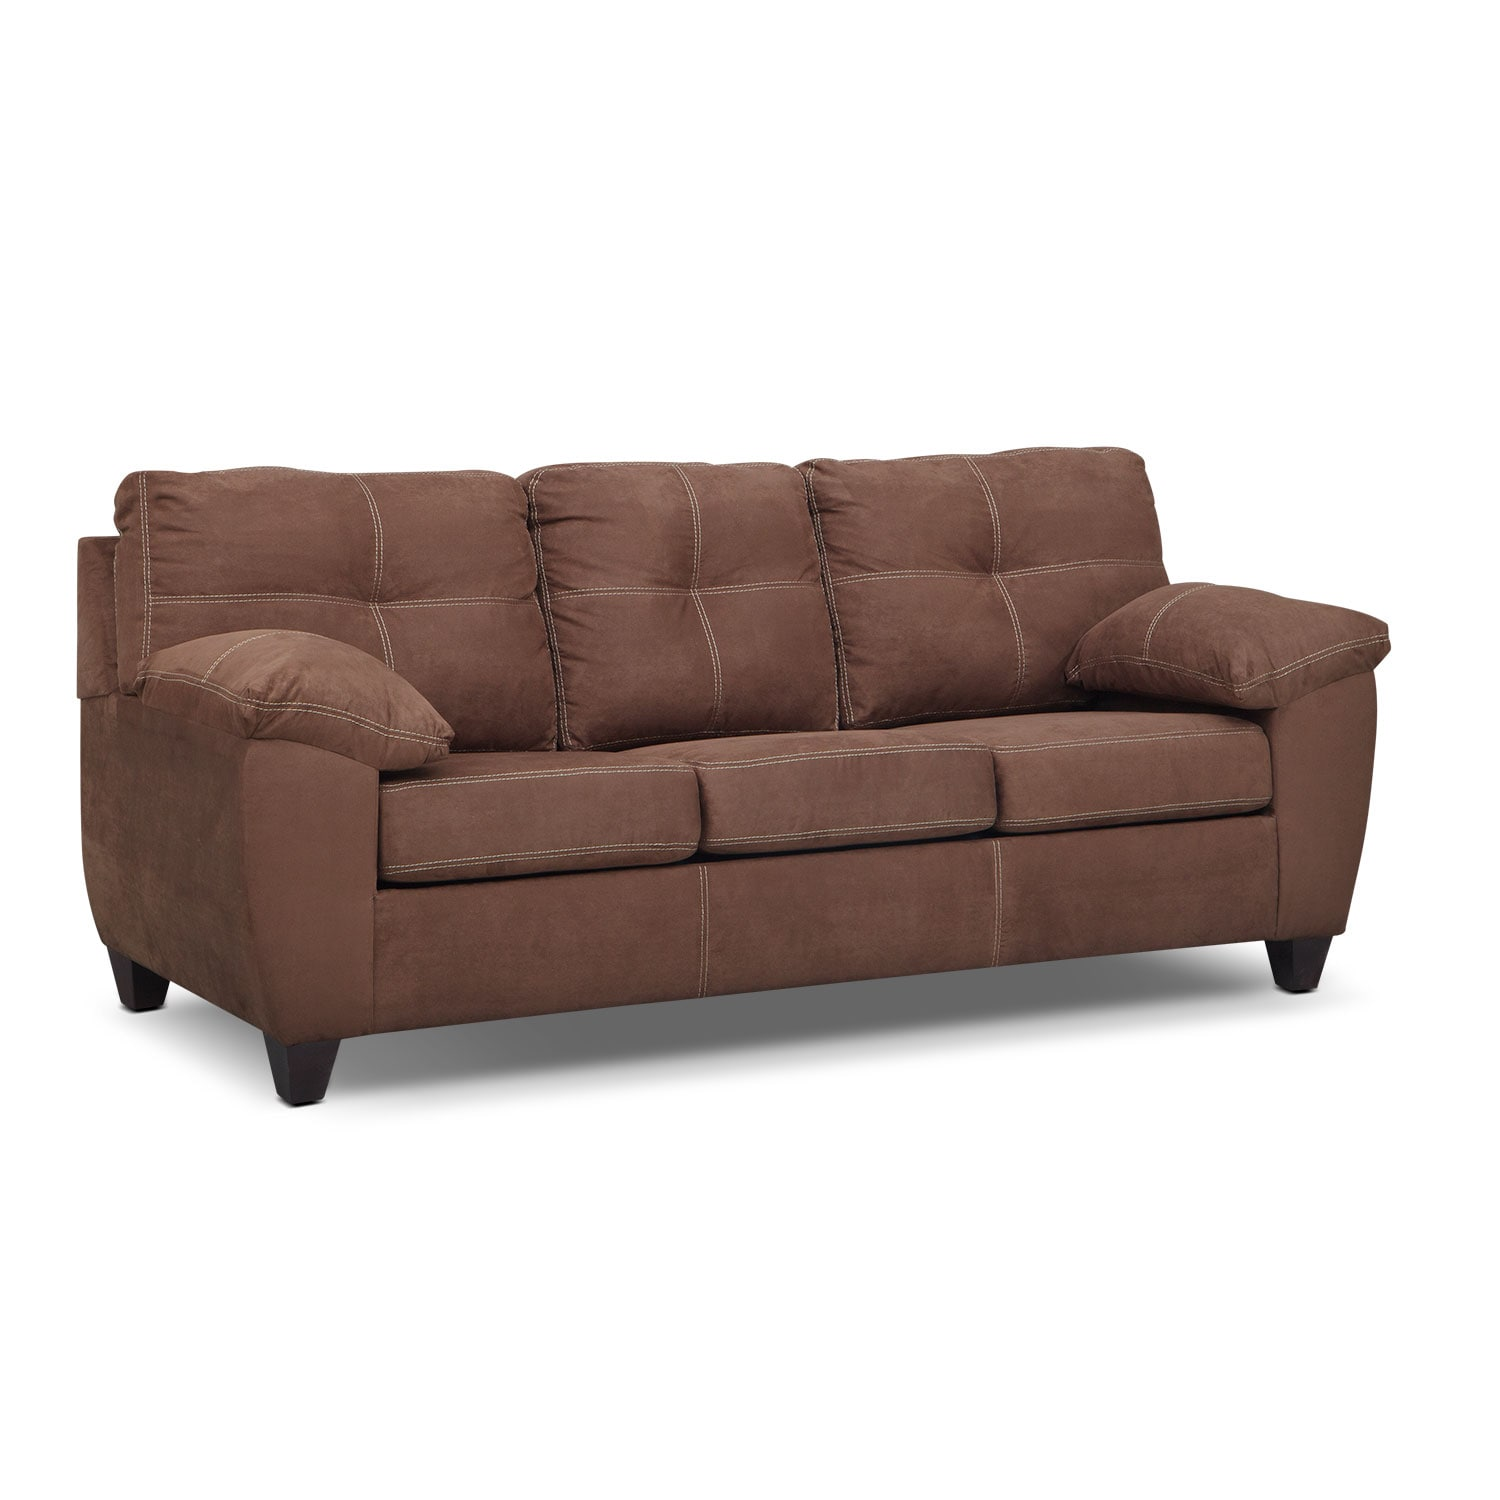 ricardo queen memory foam sleeper sofa   coffee american